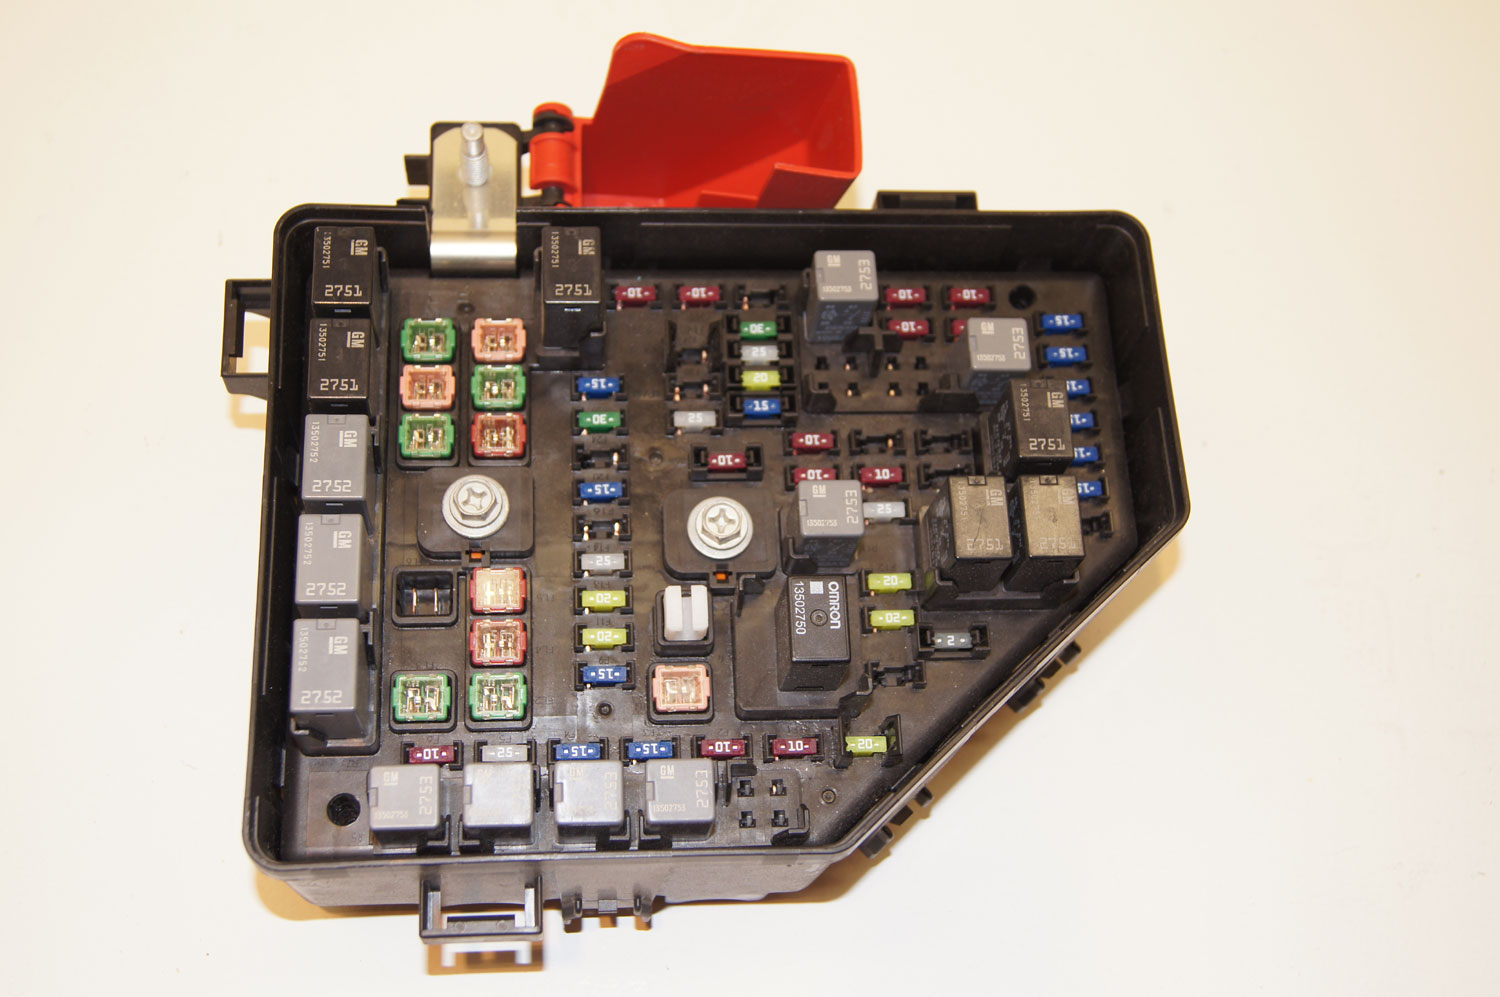 Mesmerizing 2010 Buick Lucerne Fuse Box Used Pictures - Best Image ...